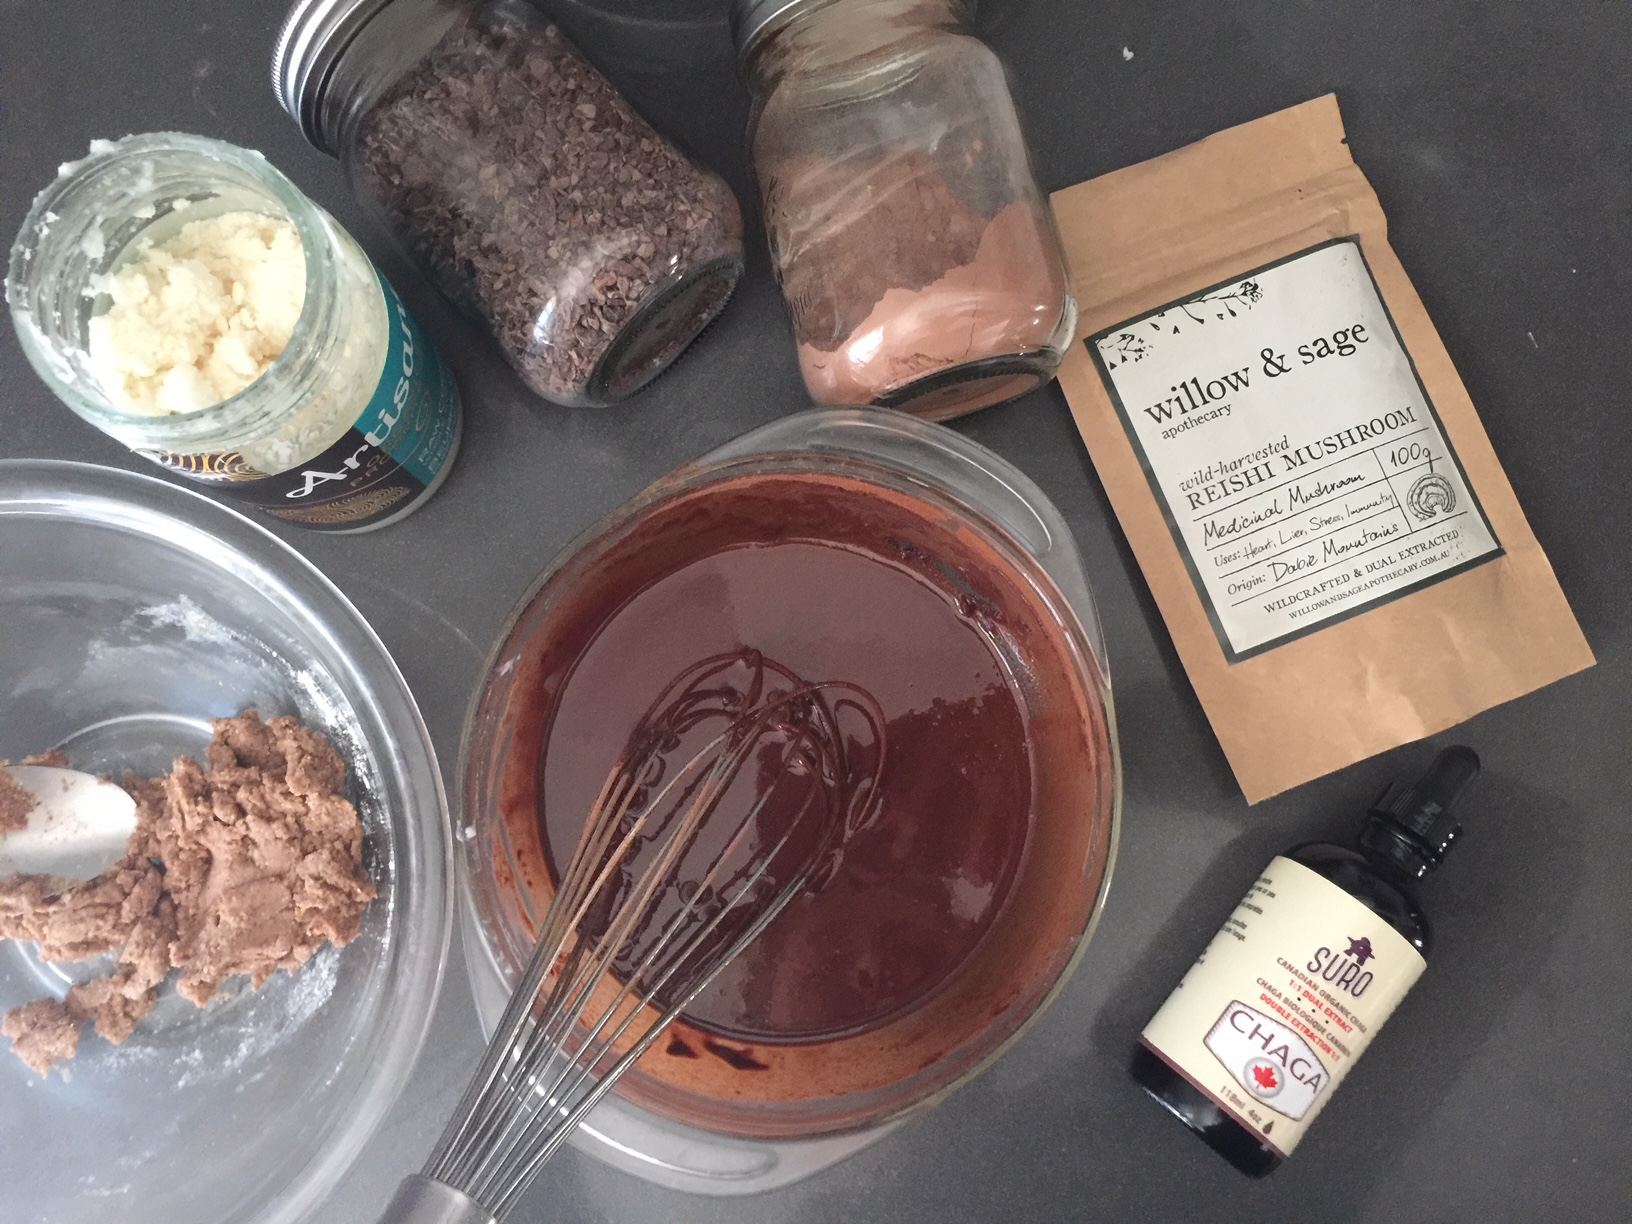 Once the coconut oil/ butter and the cacao butter are melted, whisk in the collagen, cacao powder, collagen, and cinnamon.